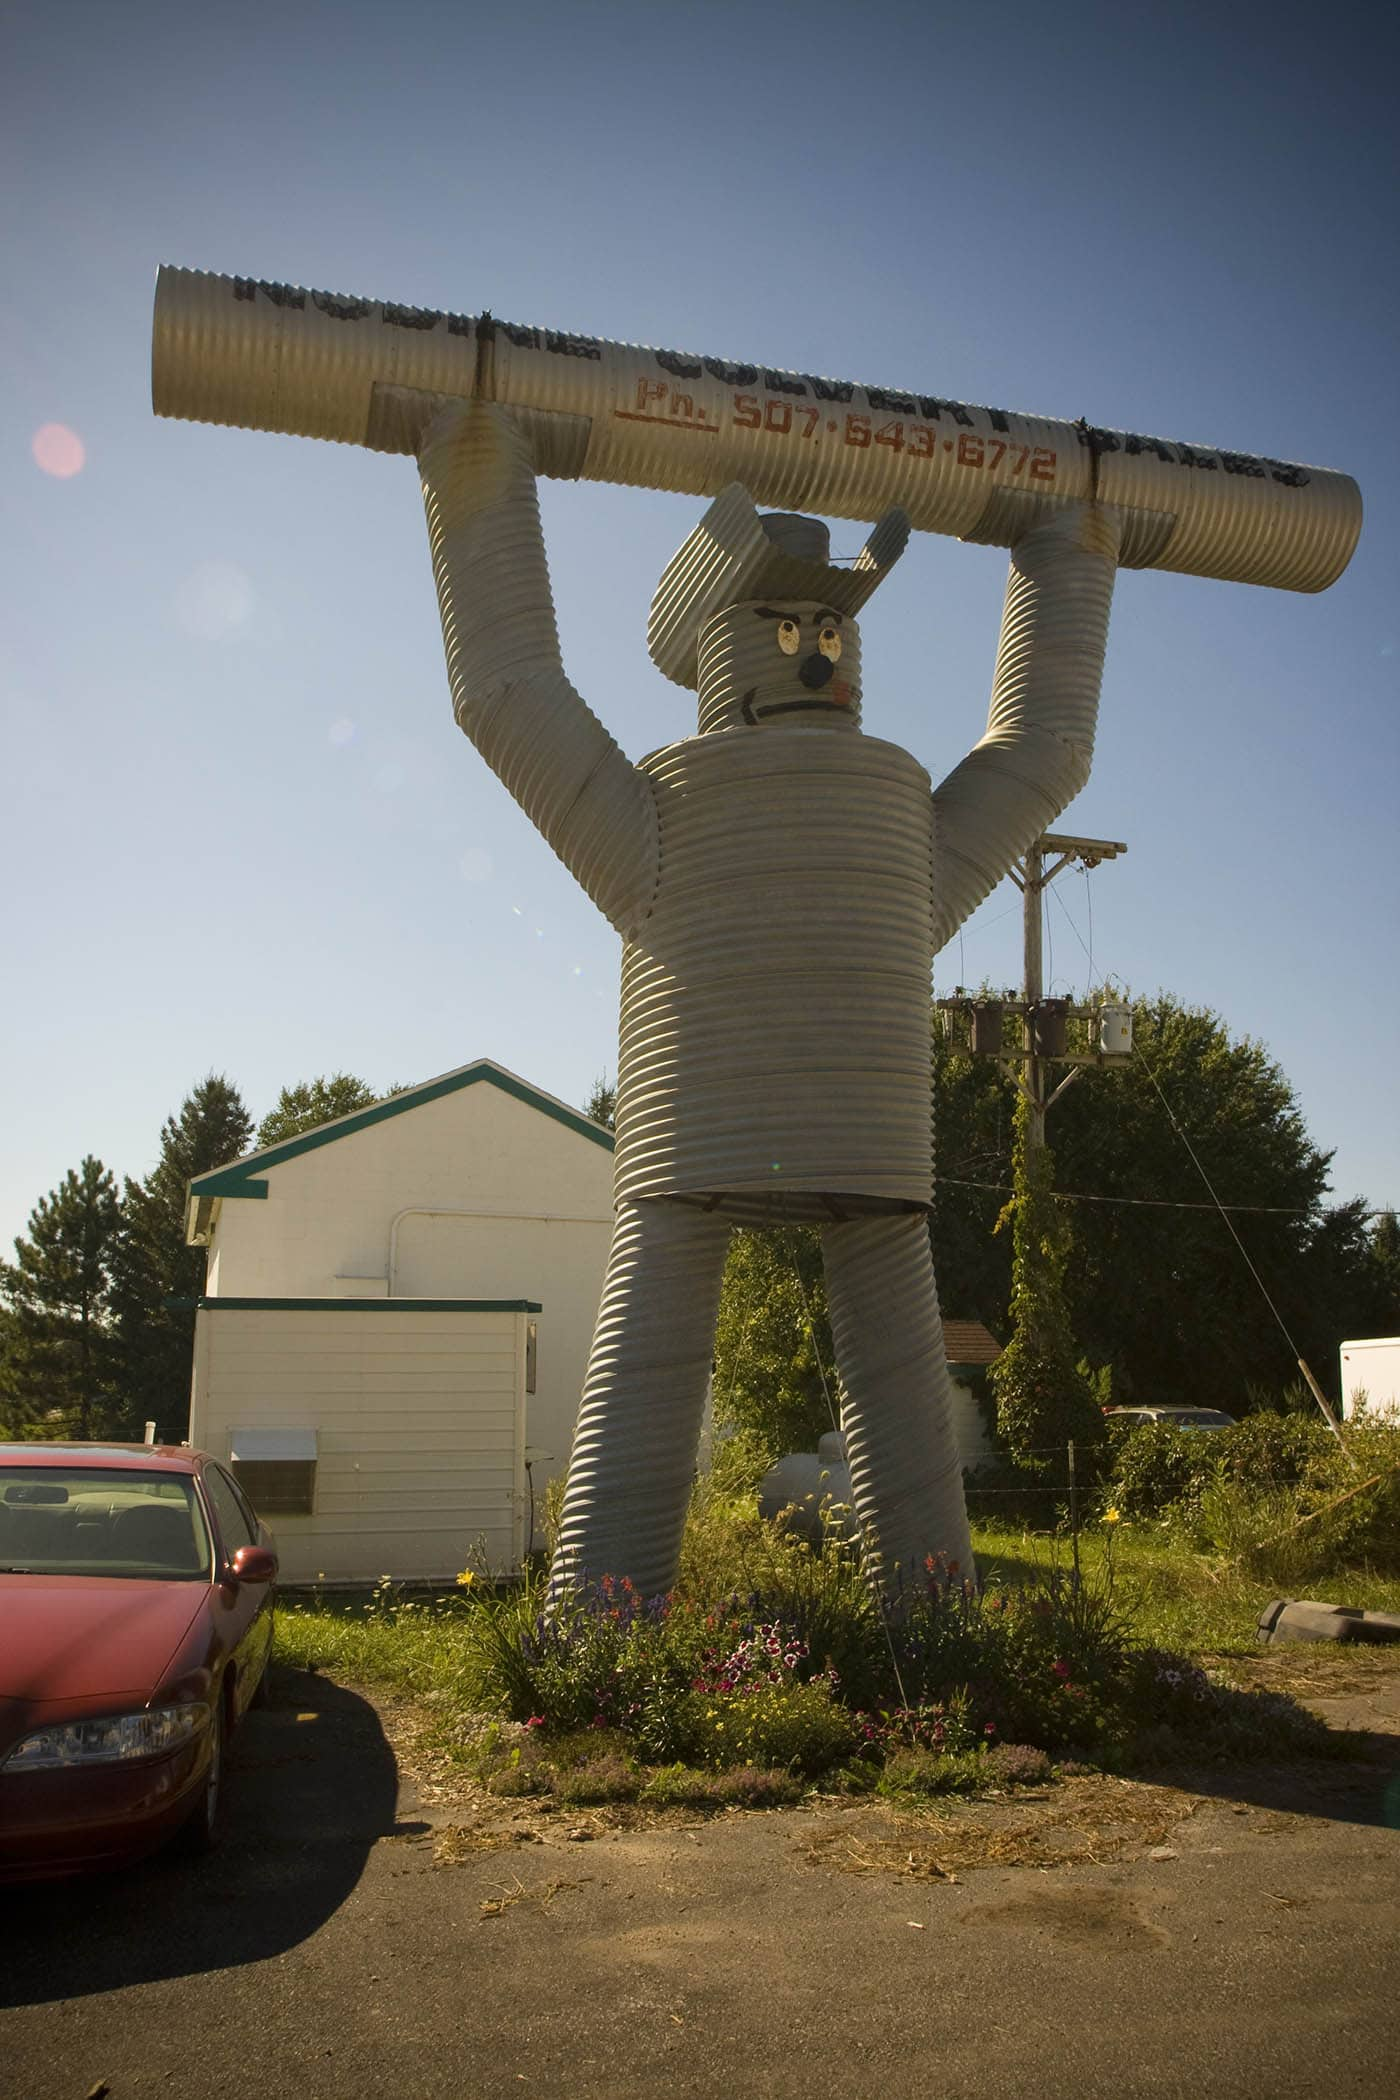 Culvert Man roadside attraction in Nodine, Minnesota. Labor Day Chicago to Mount Rushmore Road Trip.